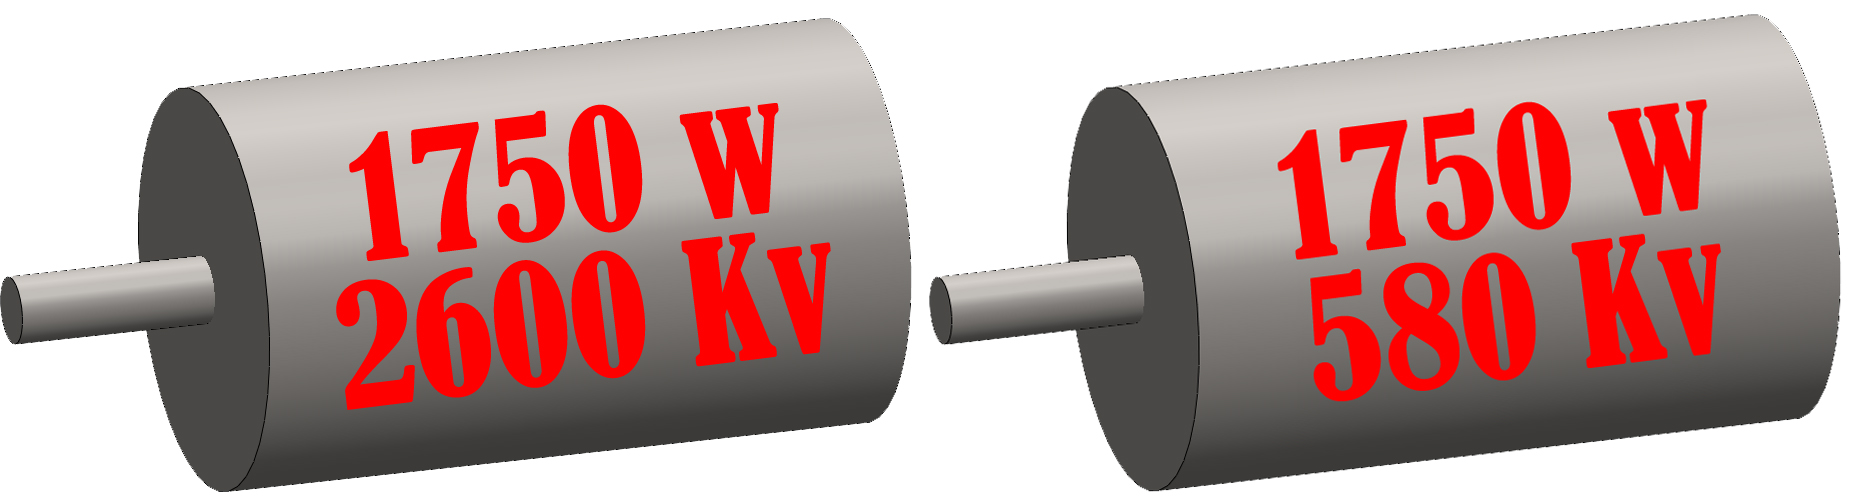 Compare Equal Size Brushless Motors with Very Different Kv's